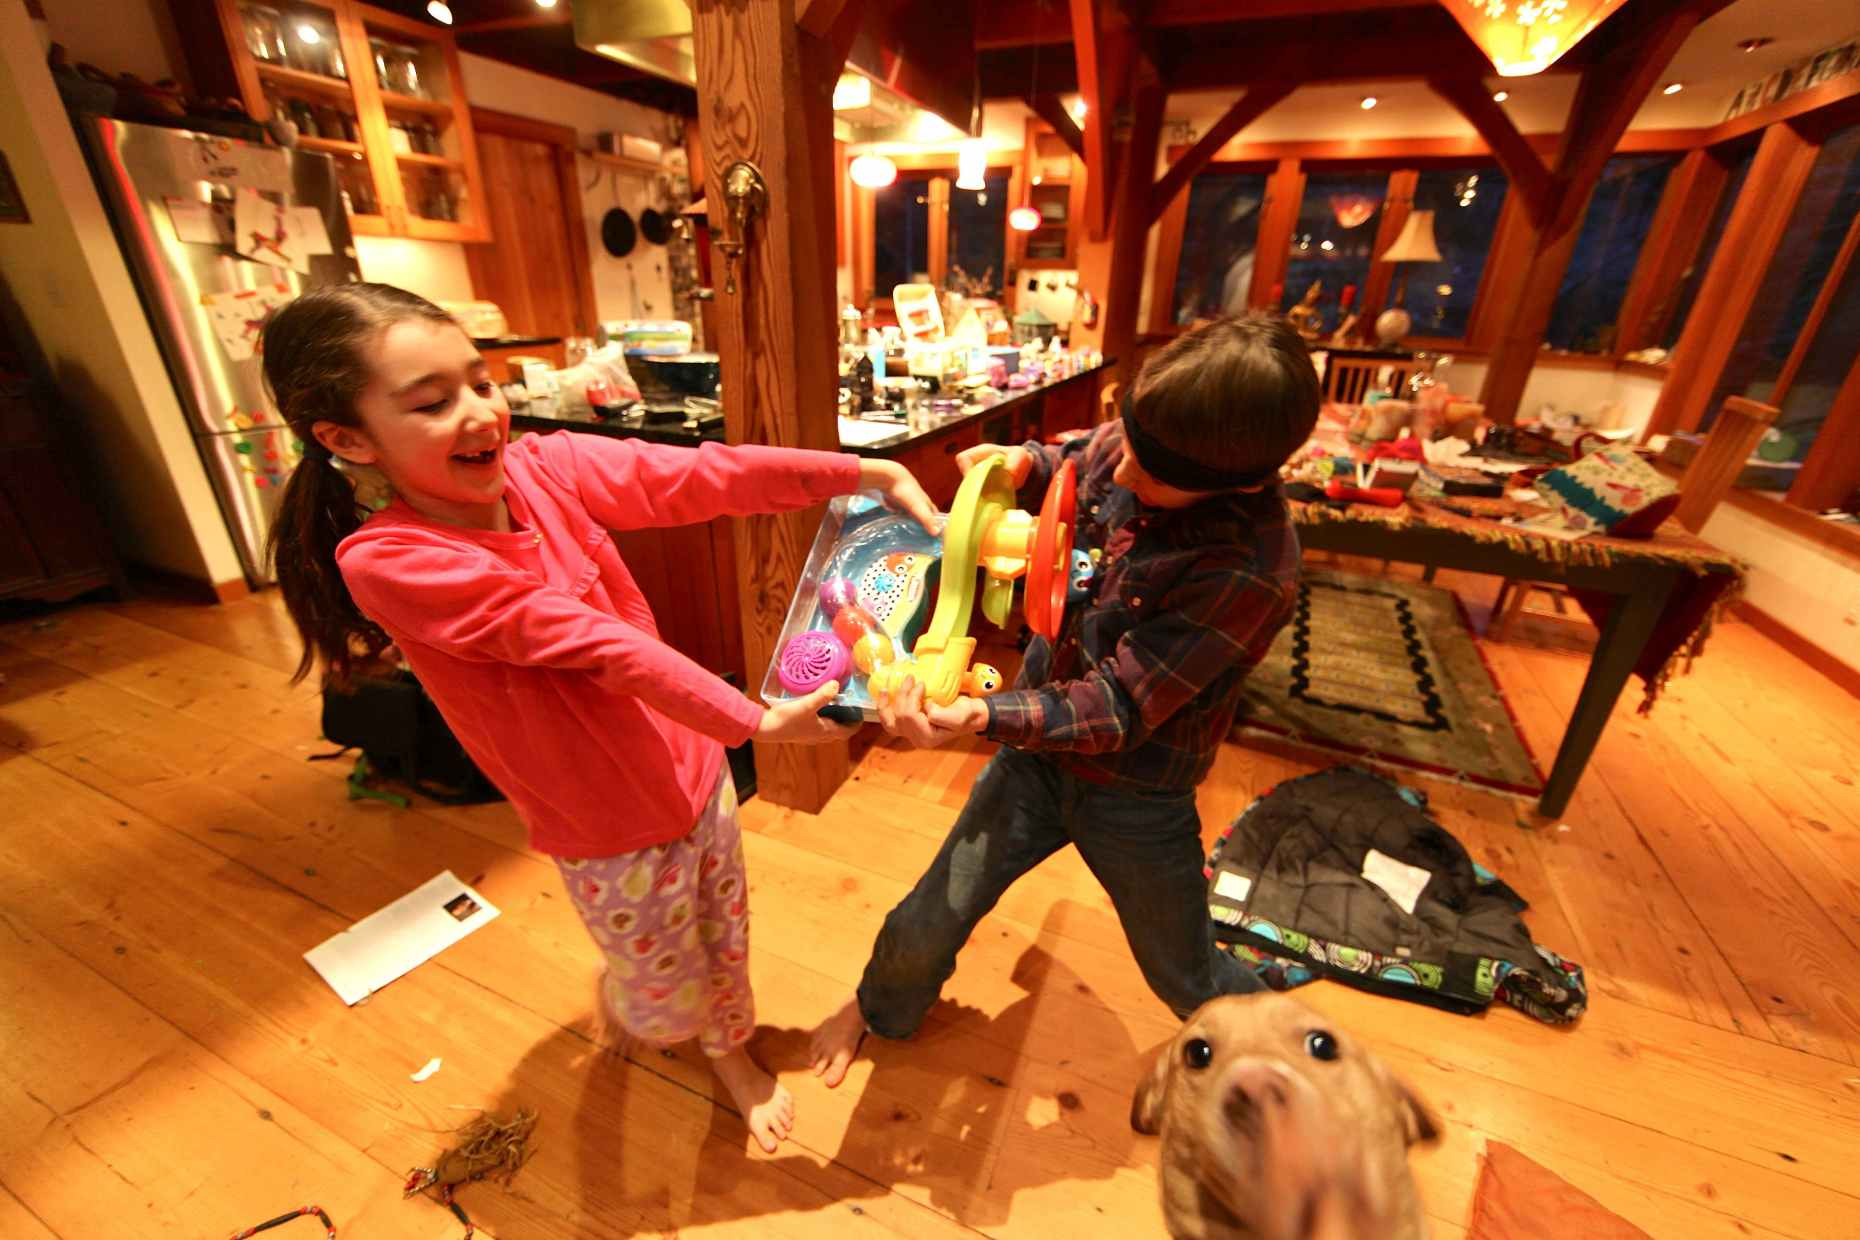 Happy Playing Kids + Dog = Clutter. Photo © Liesl Clark